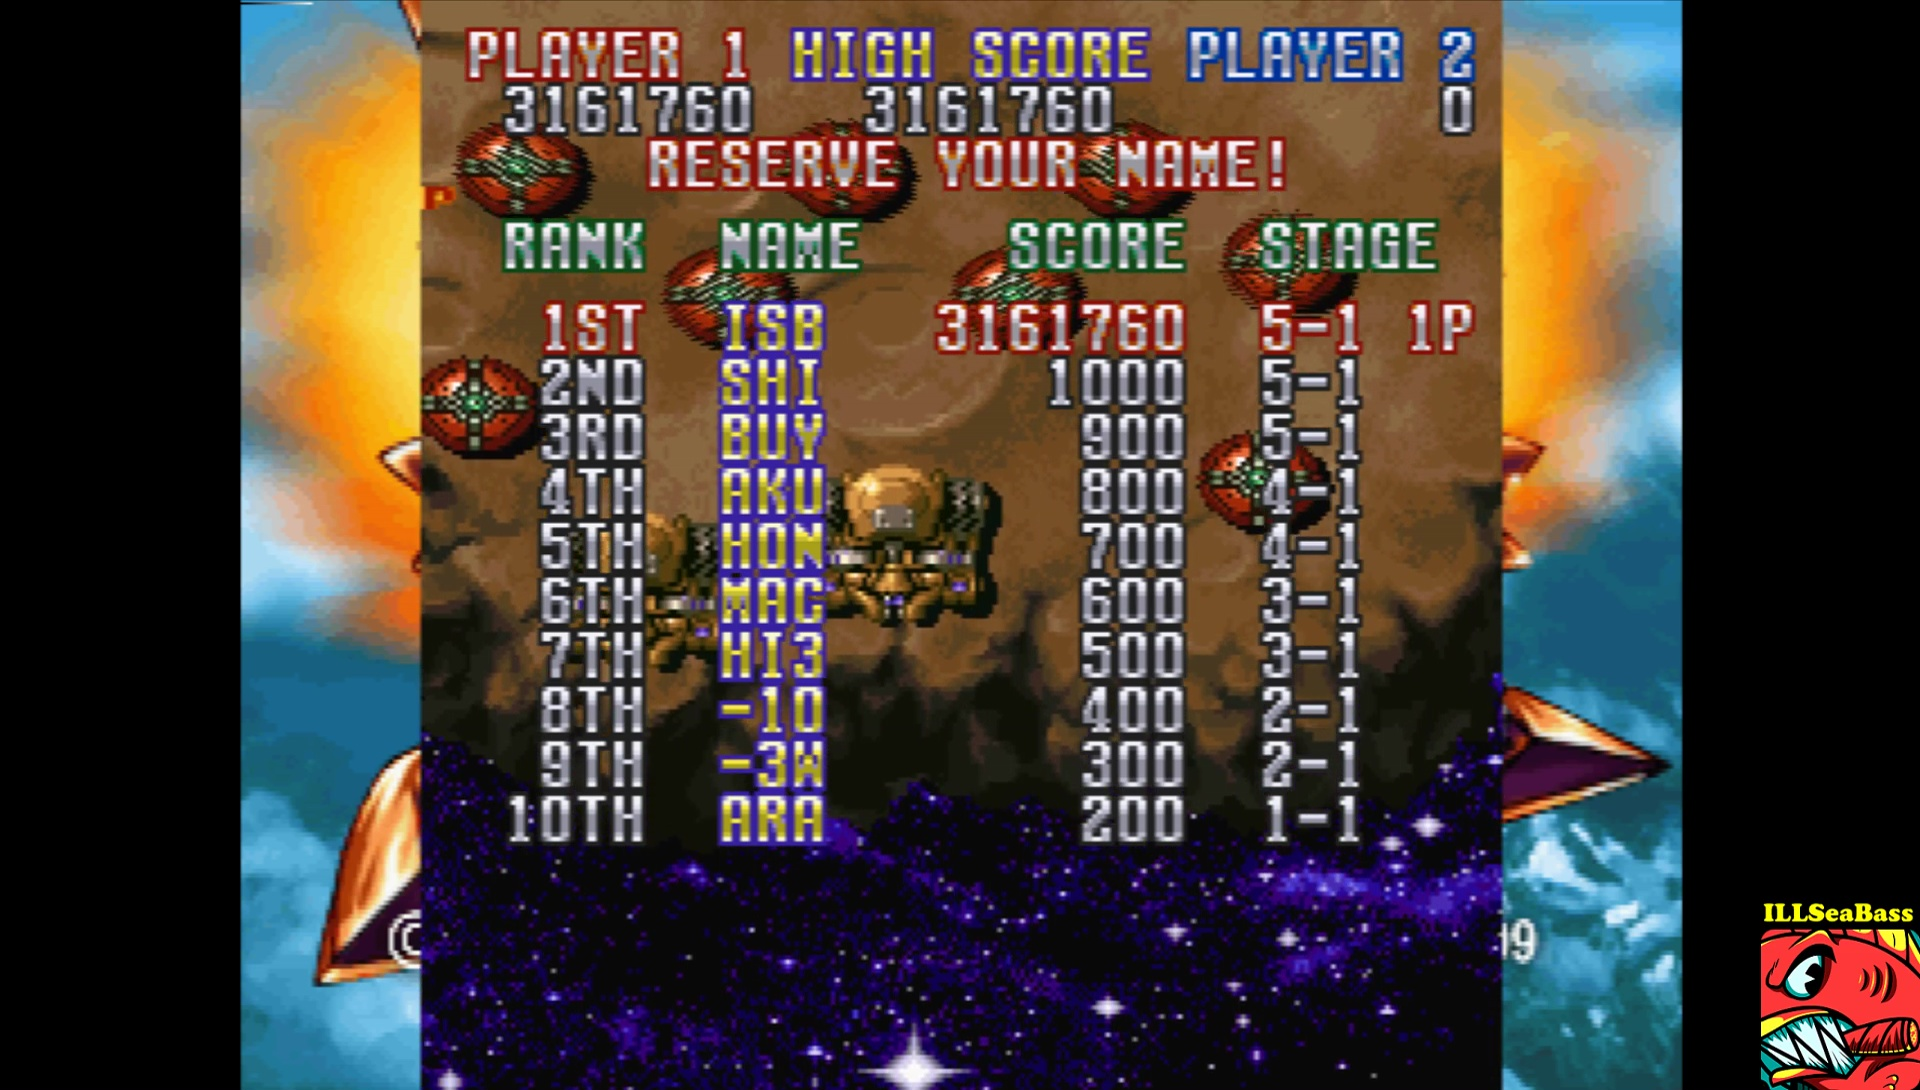 ILLSeaBass: Gekioh: Shooting King [Easy Mode] (Playstation 1 Emulated) 3,161,760 points on 2017-02-12 20:56:31